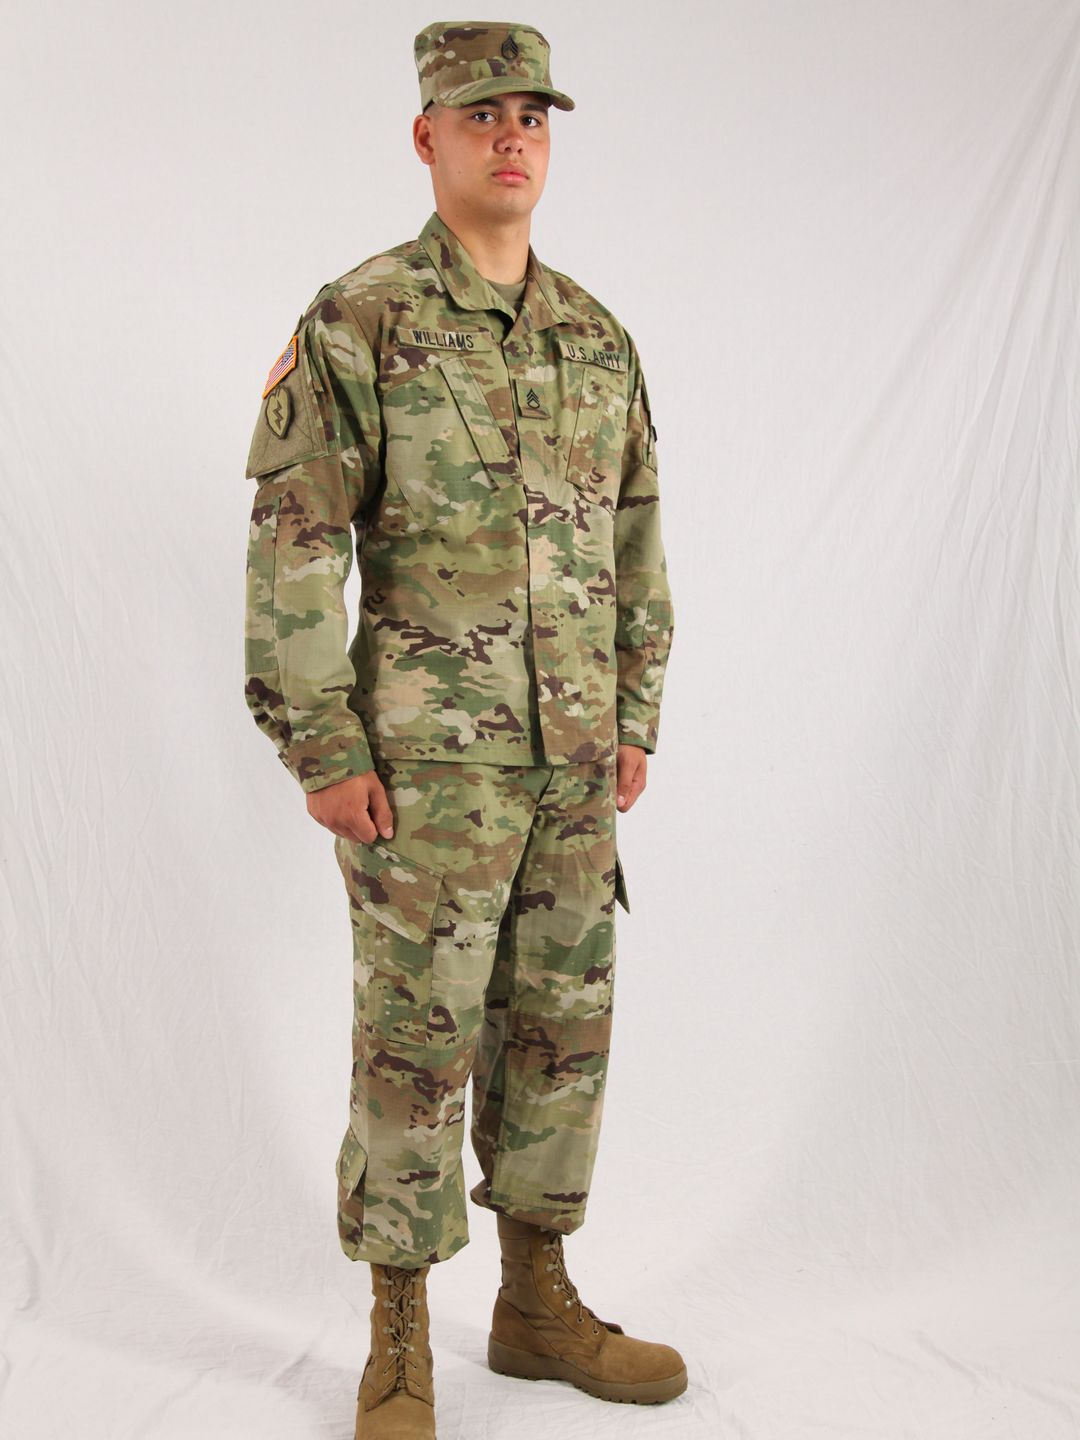 Wear Of Acu Uniform 117